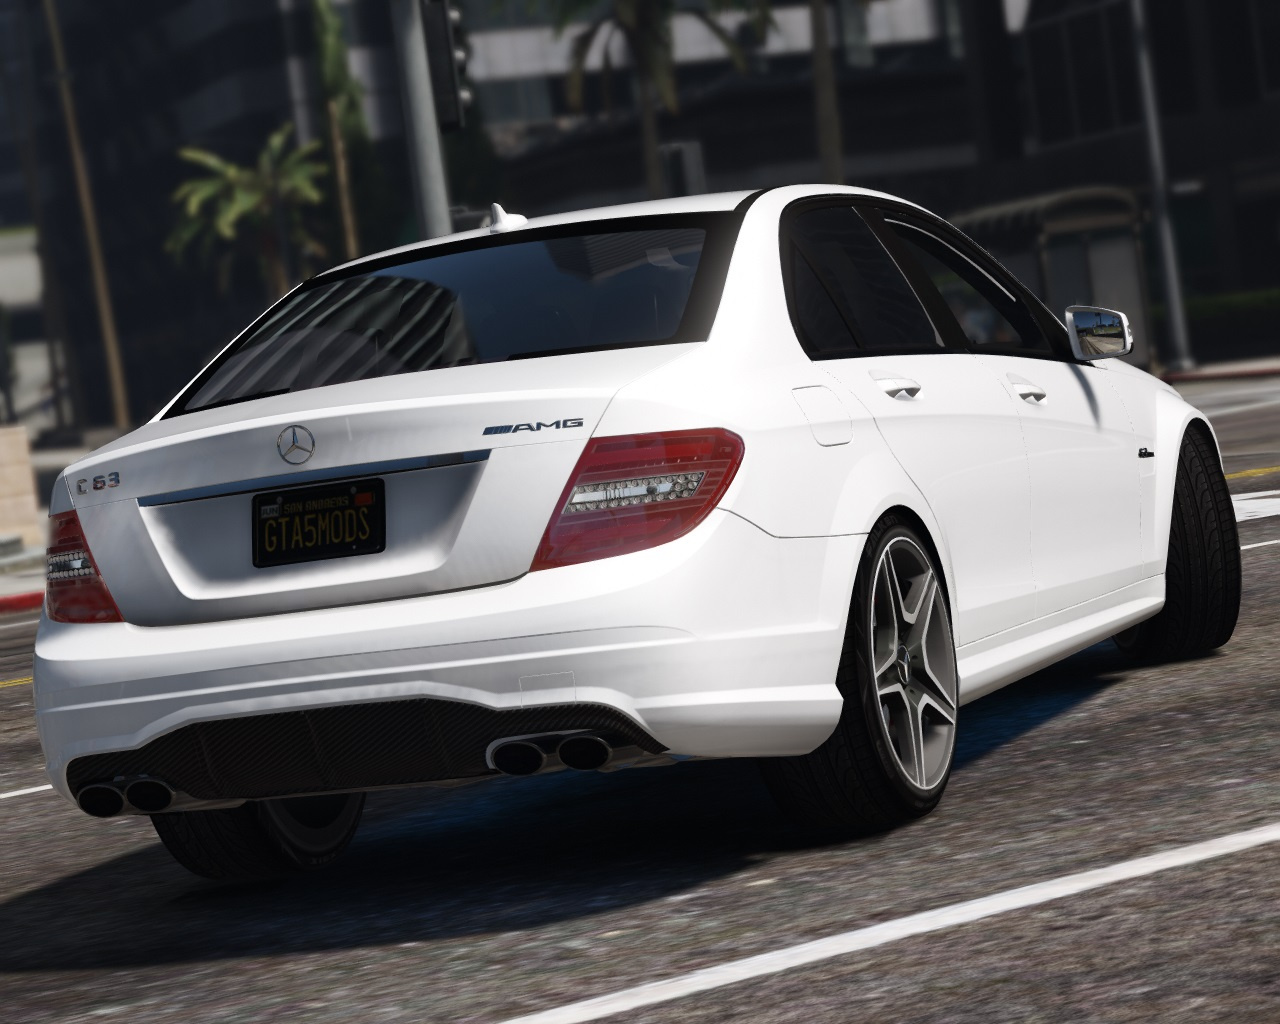 2011 mercedes benz c63 amg w204 add on replace tuning hq gta5. Black Bedroom Furniture Sets. Home Design Ideas